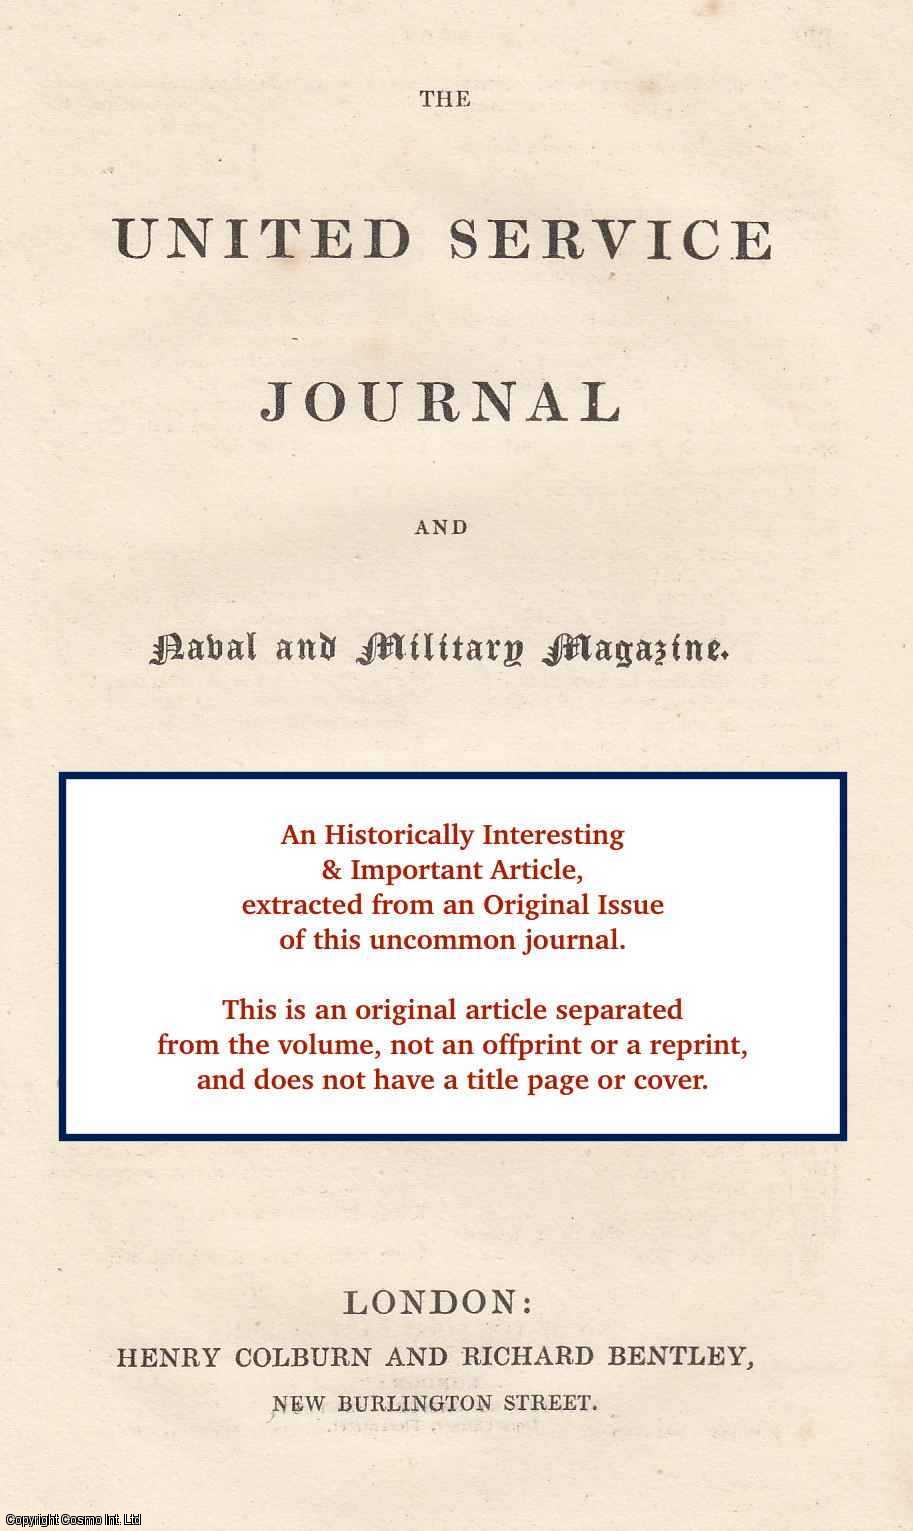 BIZARRO, A. H. - The Influence of Preliminary Heating upon Peptic and Tryptic Proteolysis.